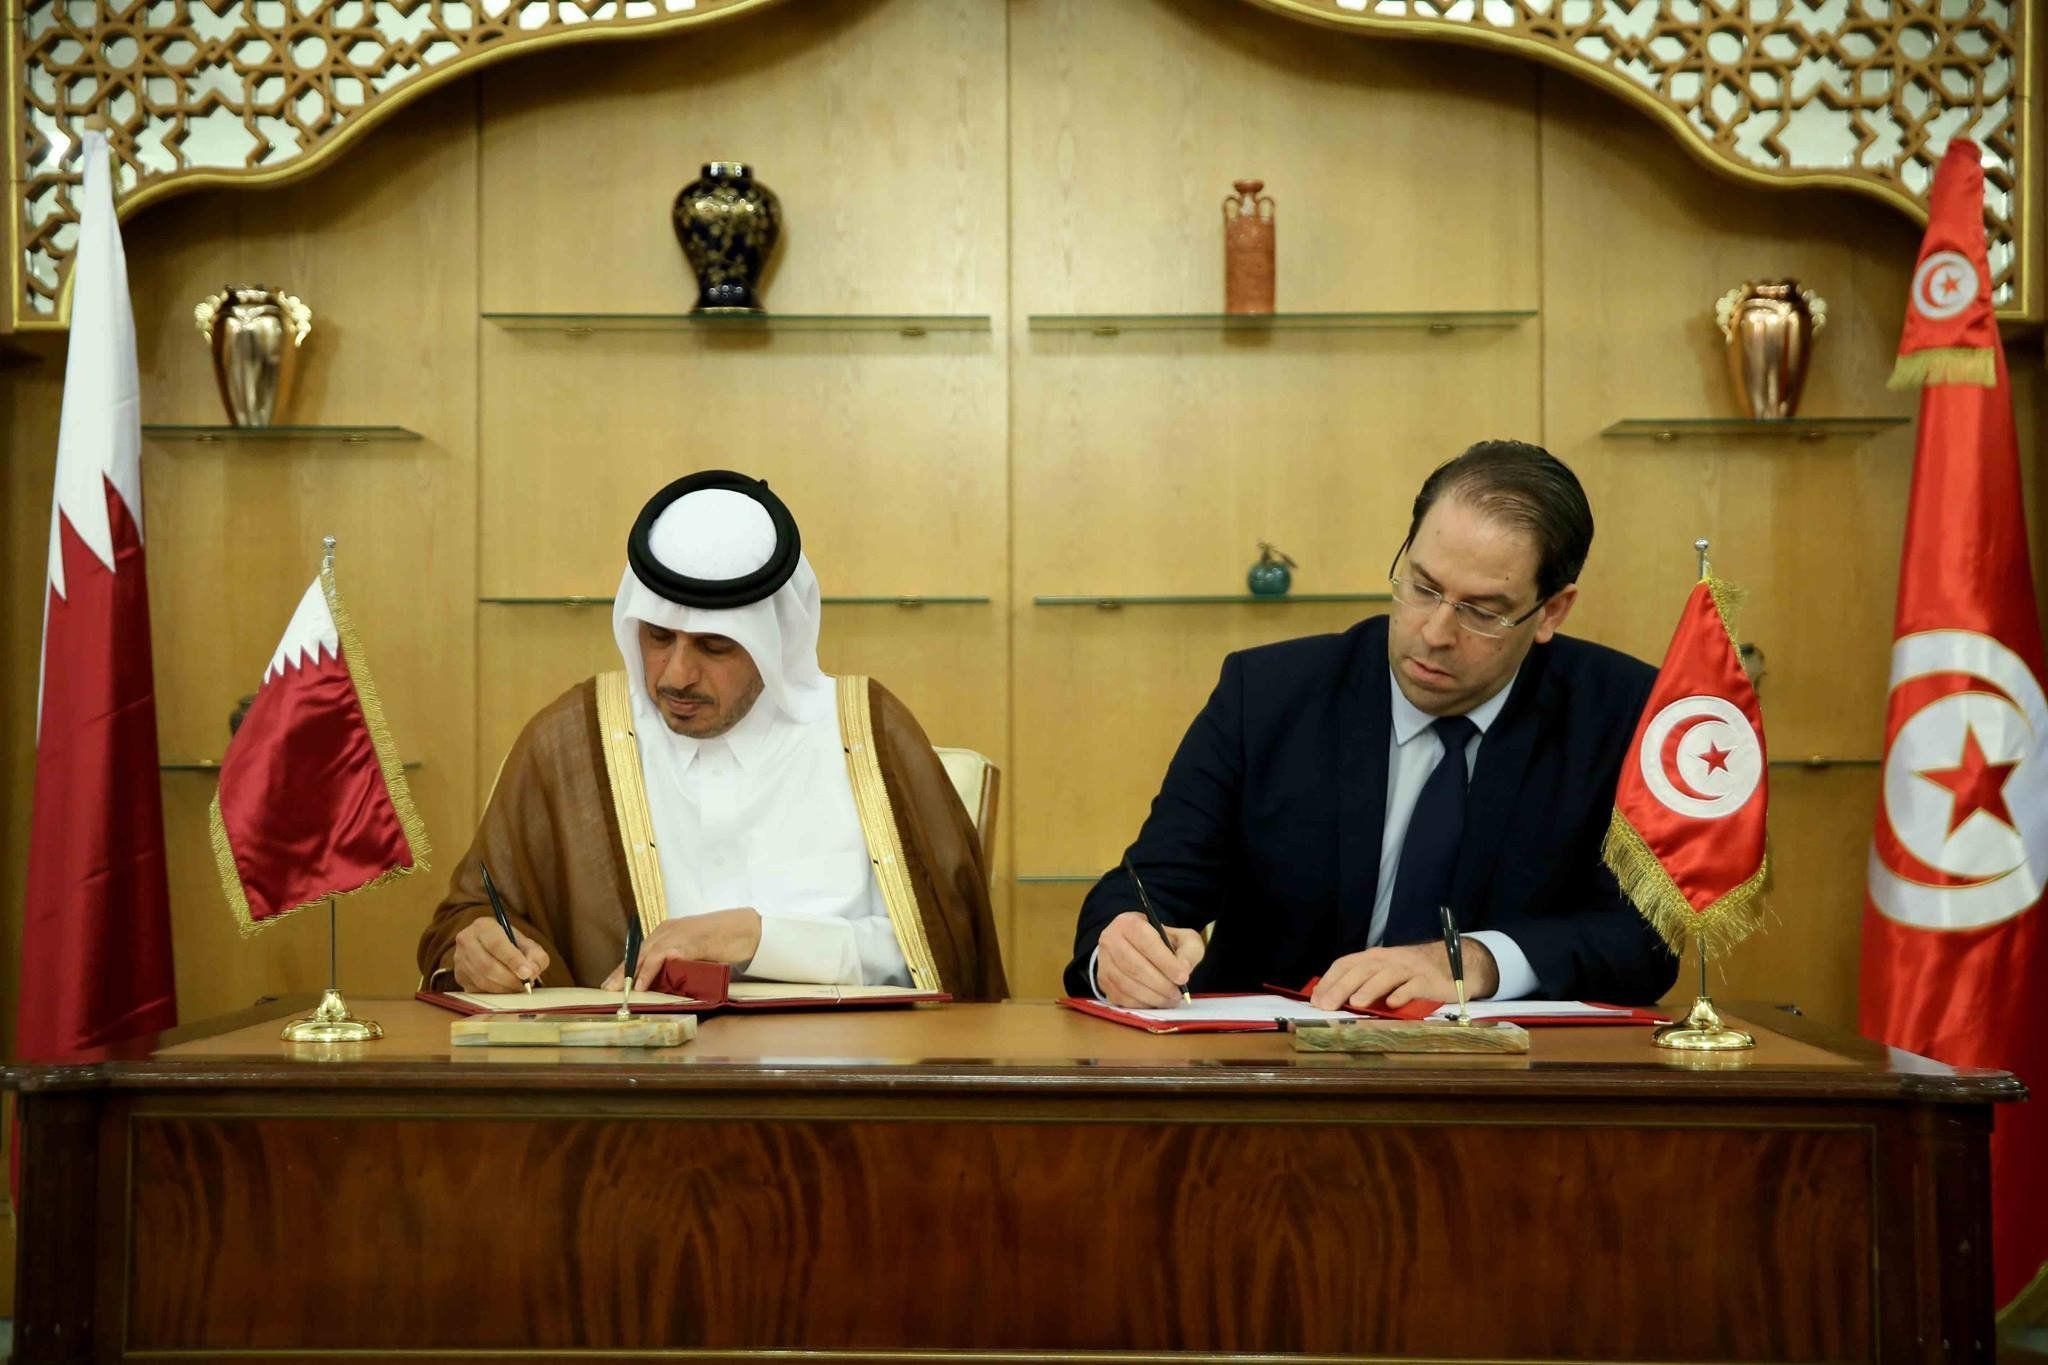 Signature de 10 accords et mémorandums d'entente entre la Tunisie et le